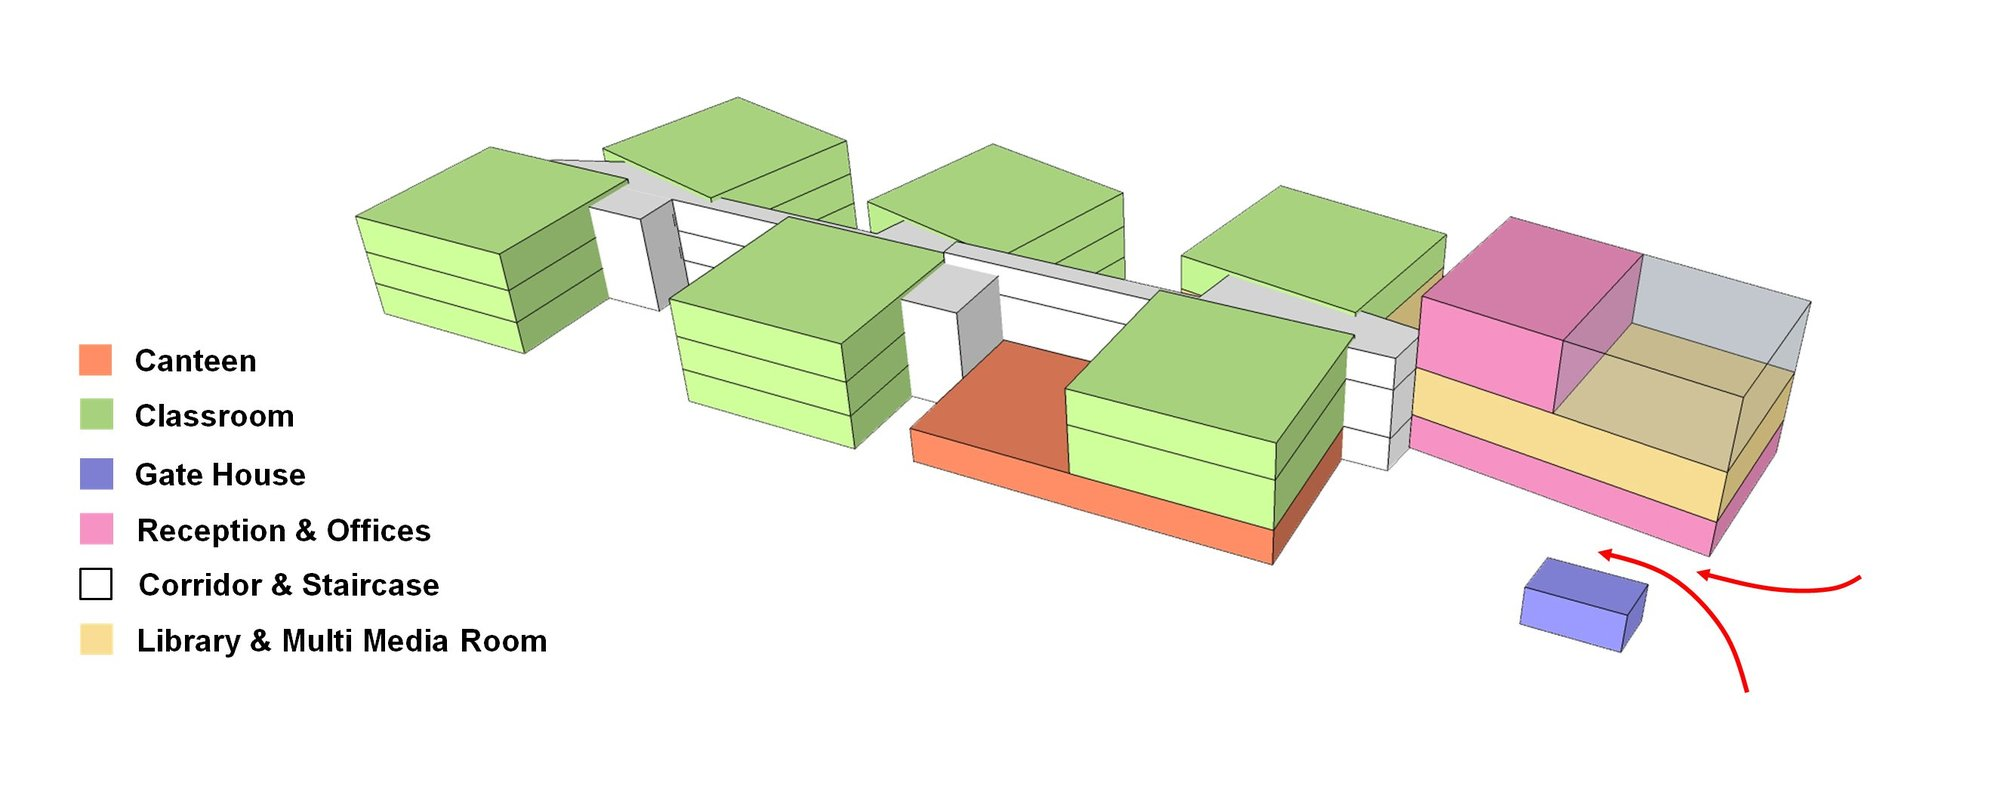 Gallery of suzhou 133 baitang one kindergarten project for Architecture zoning diagram